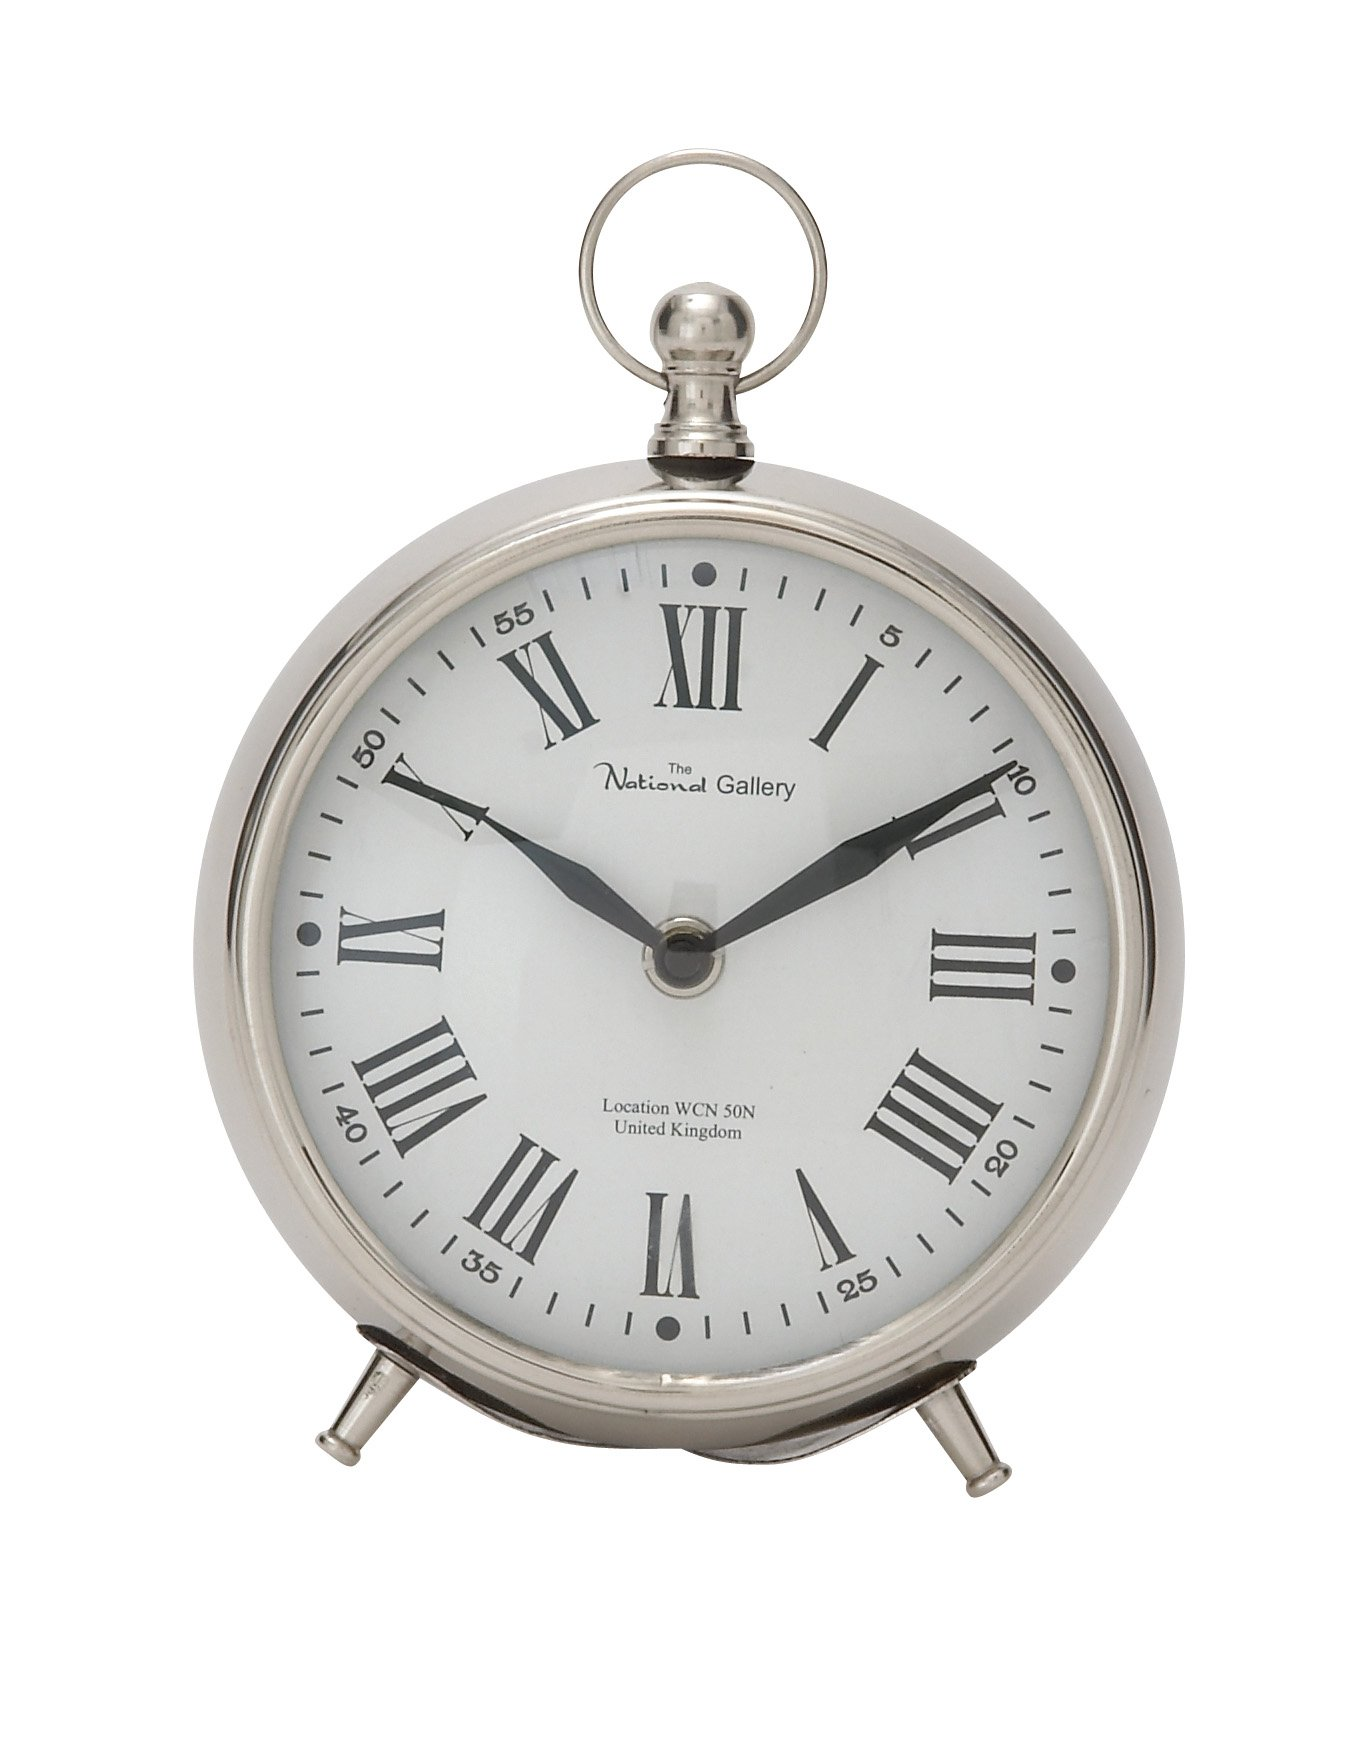 """Deco 79 40681 Well-Made Metal Table Clock, 6"""" W x 7"""" H - Color: silver Finish: Glossy Material: metal - clocks, bedroom-decor, bedroom - 71YBfAGBLUL -"""